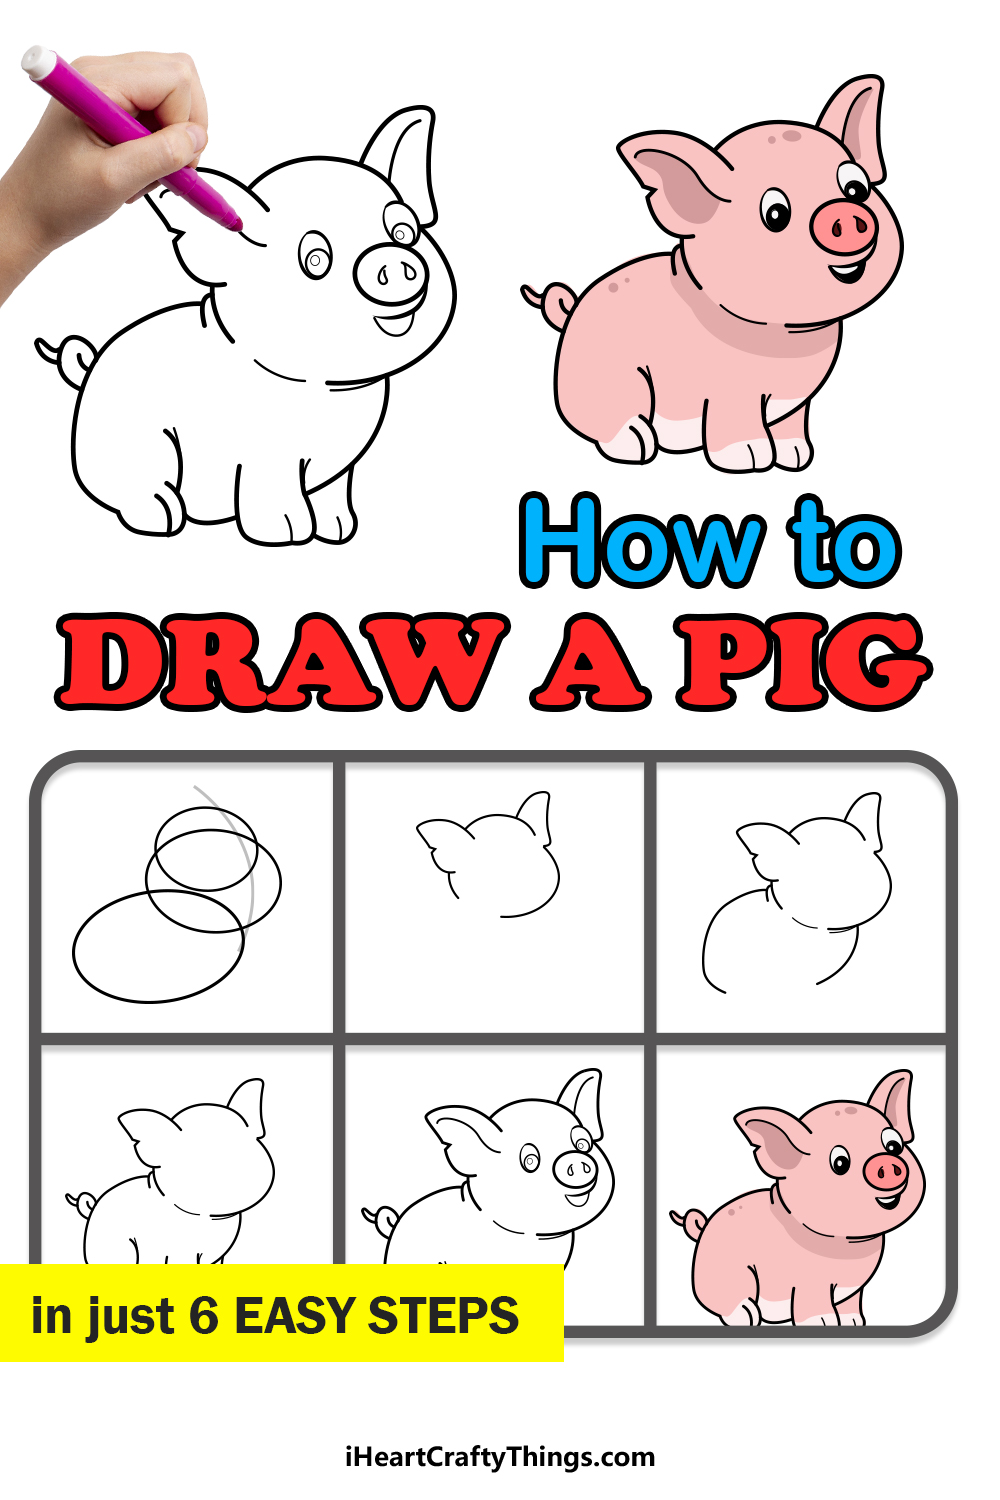 how to draw a pig in 6 easy steps